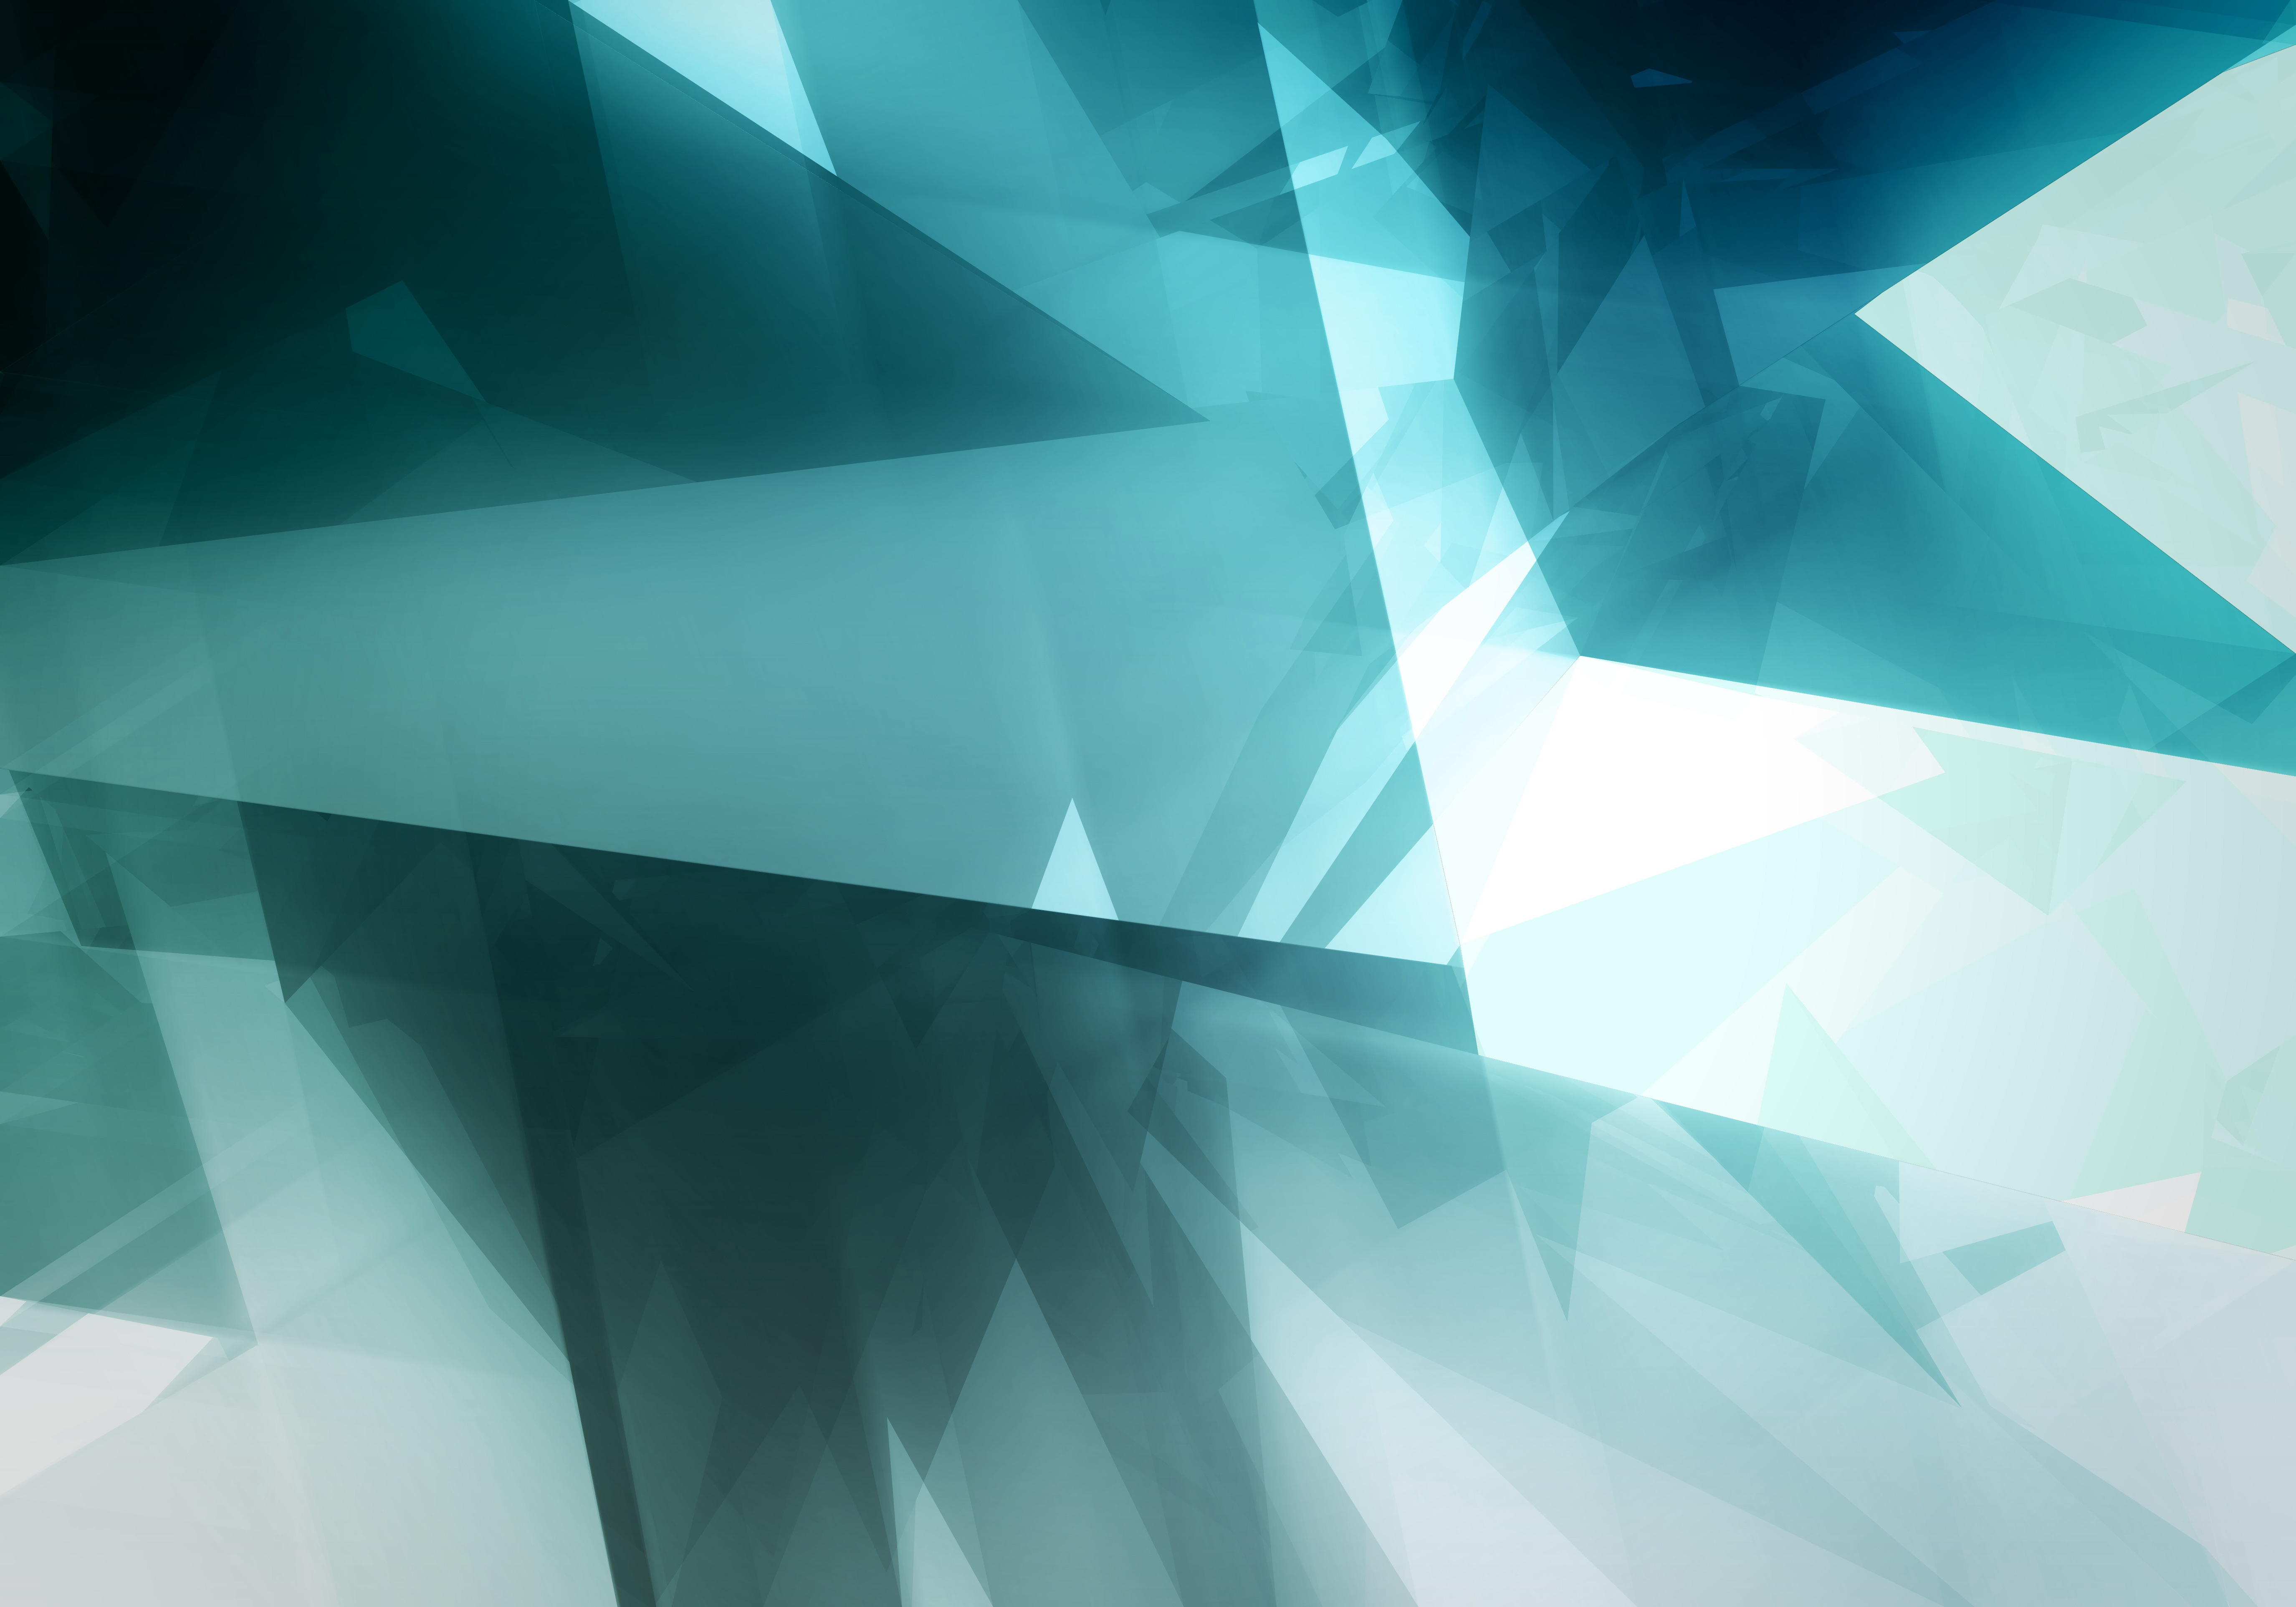 Turquoise 5k Retina Ultra HD Wallpaper And Background Image